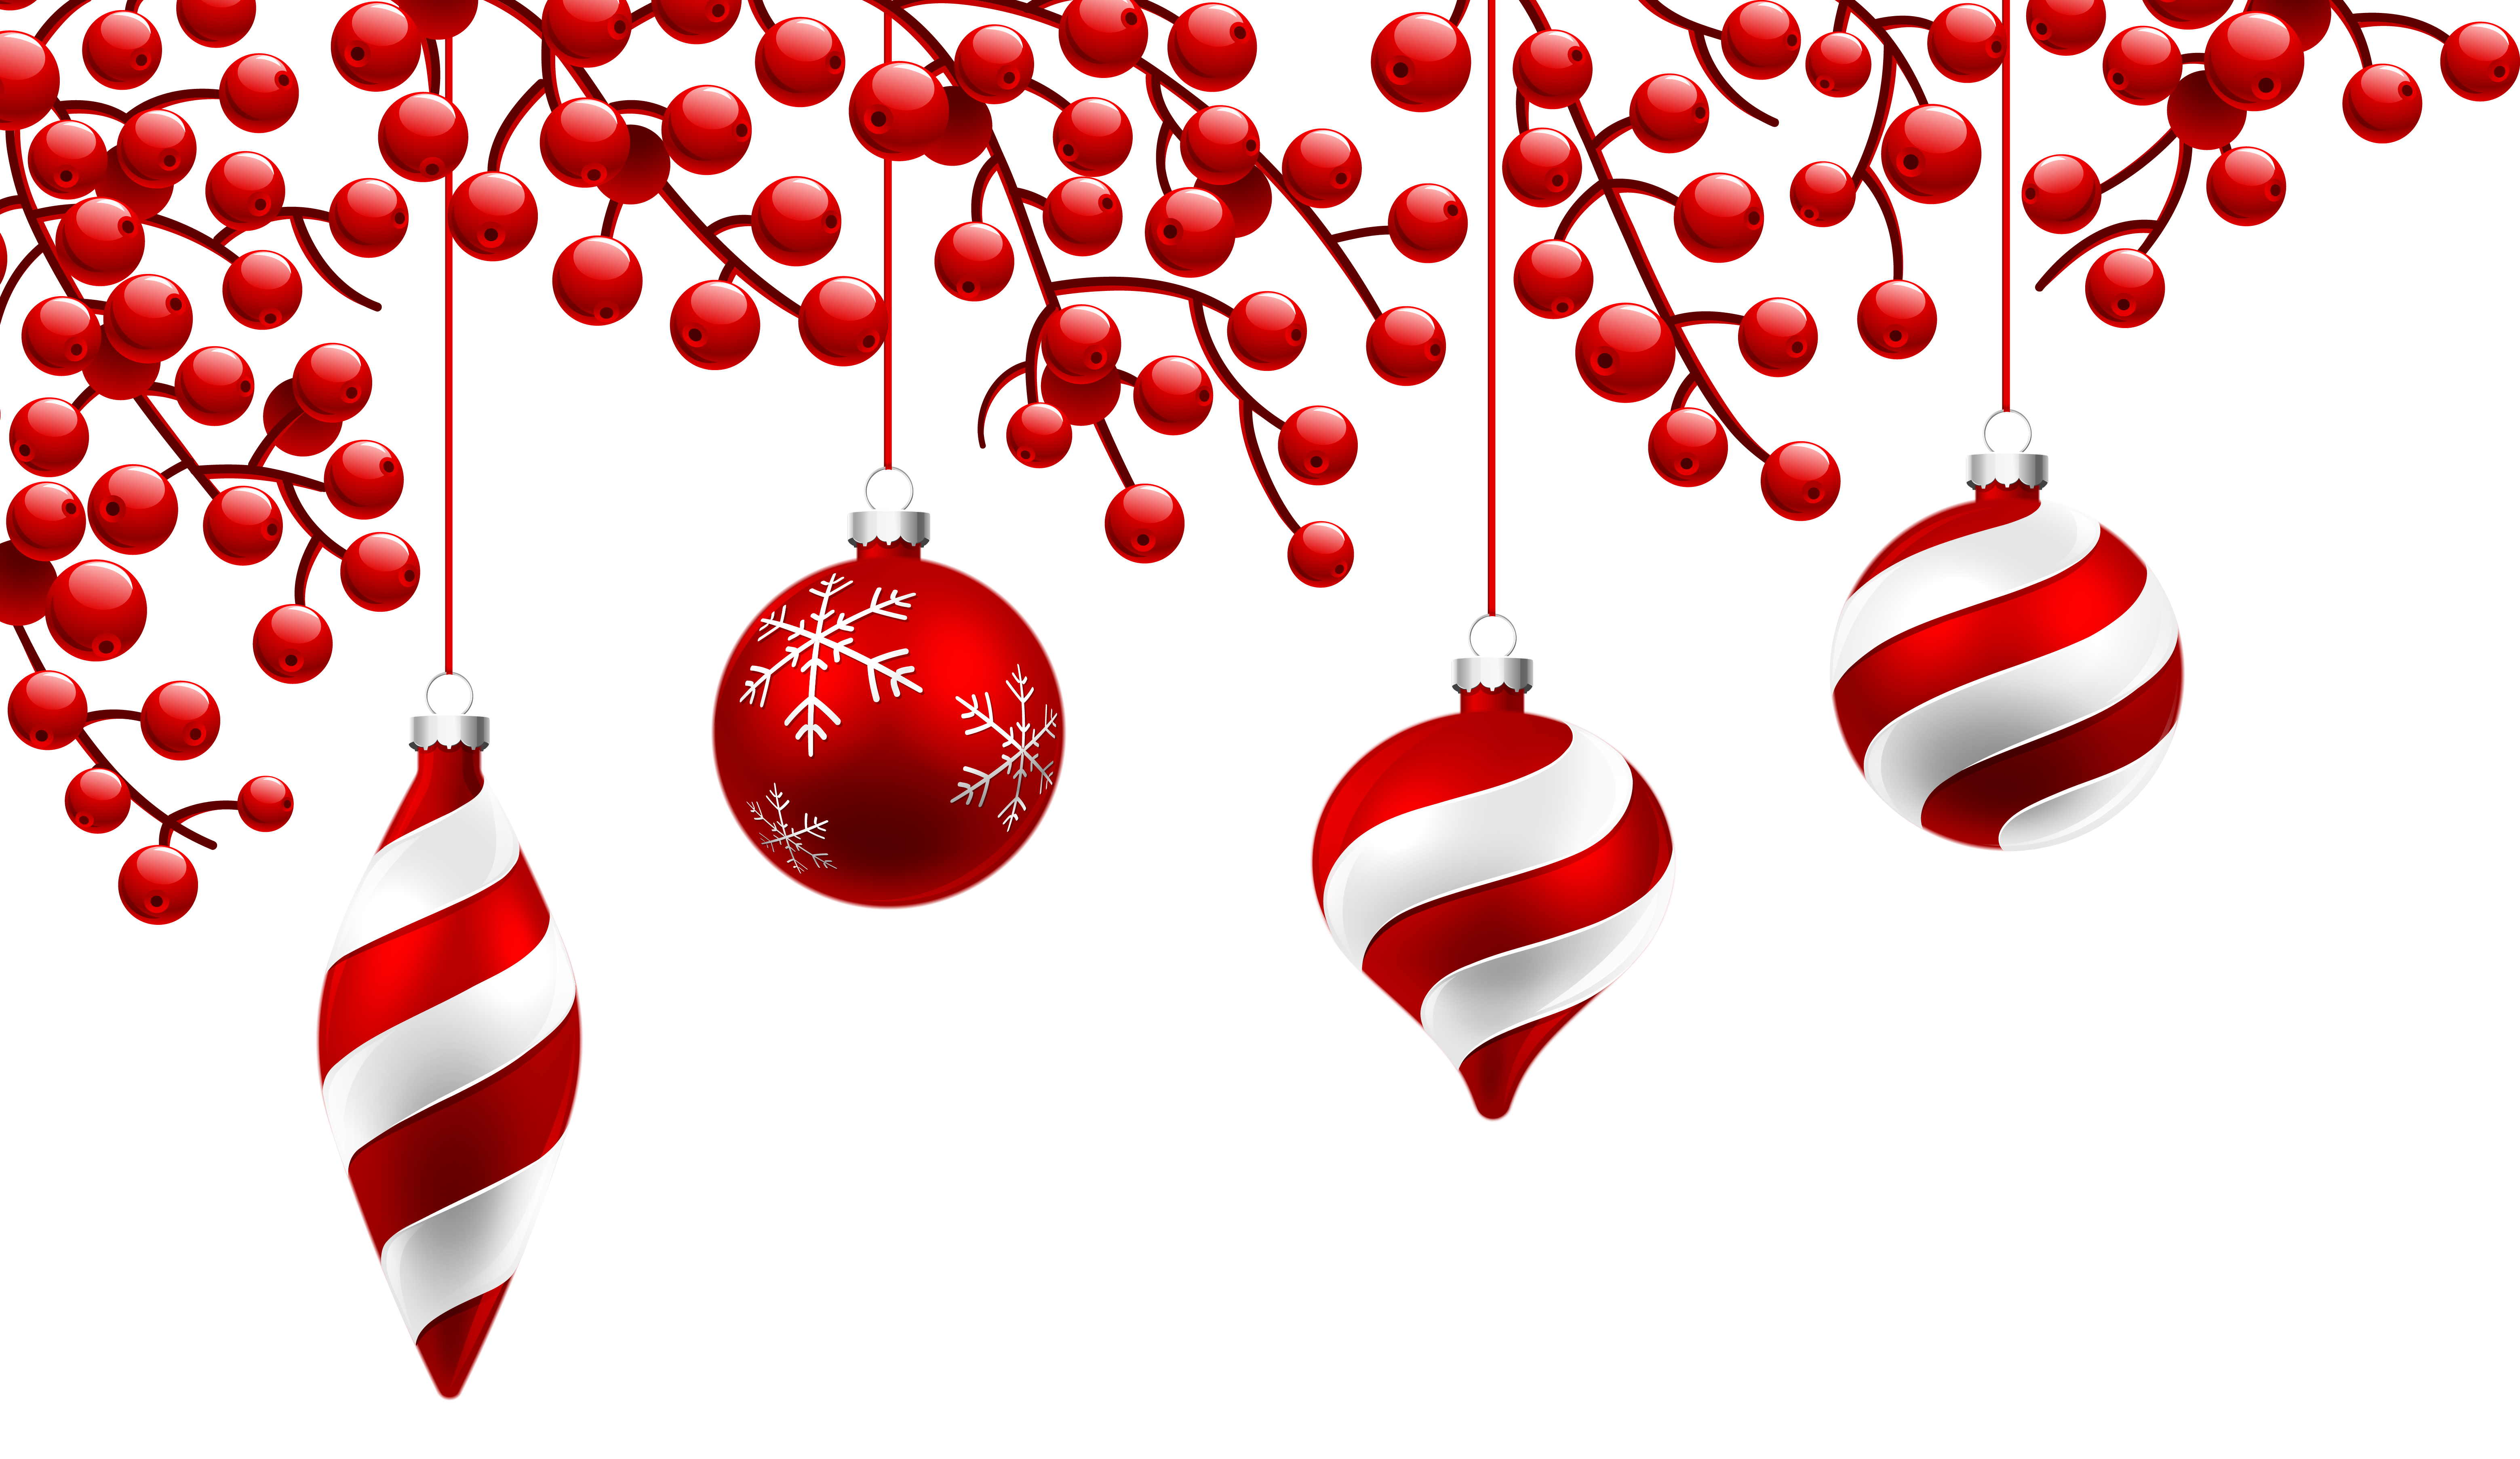 Red Christmas Decoration PNG Clipart Image | Gallery ... jpg royalty free library